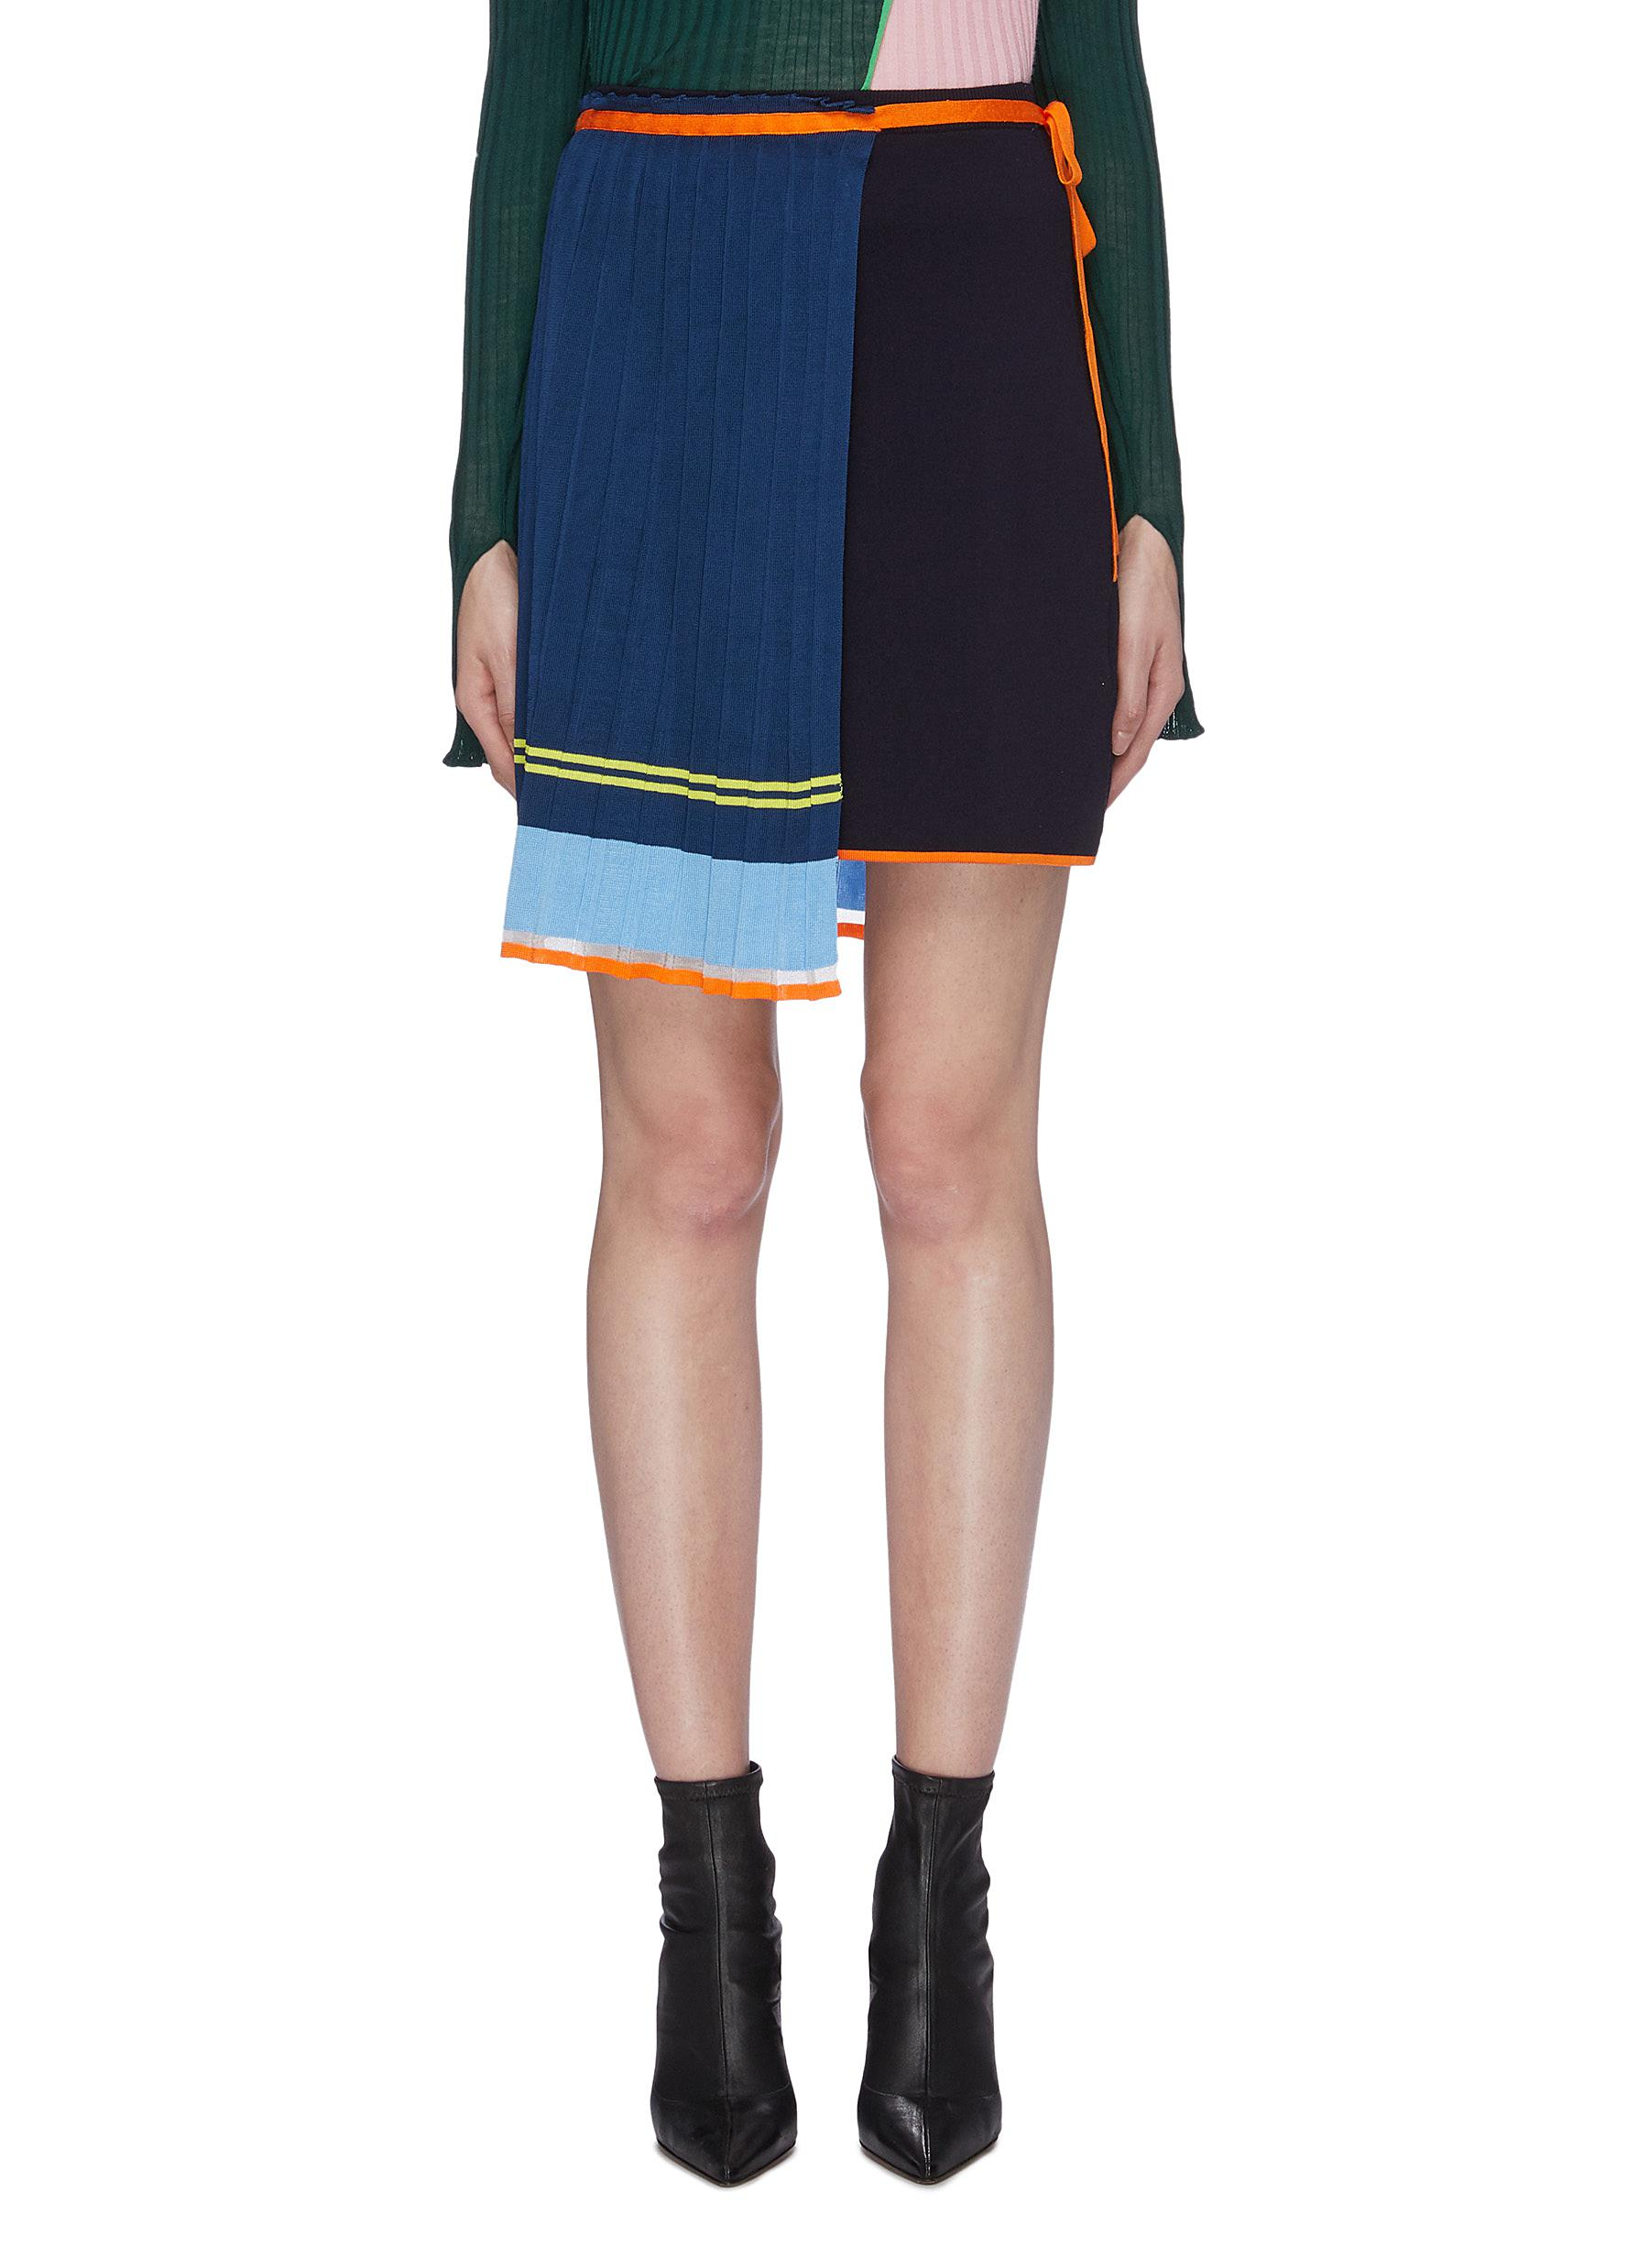 Tie pleated apron panel colourblock knit skirt by I-Am-Chen